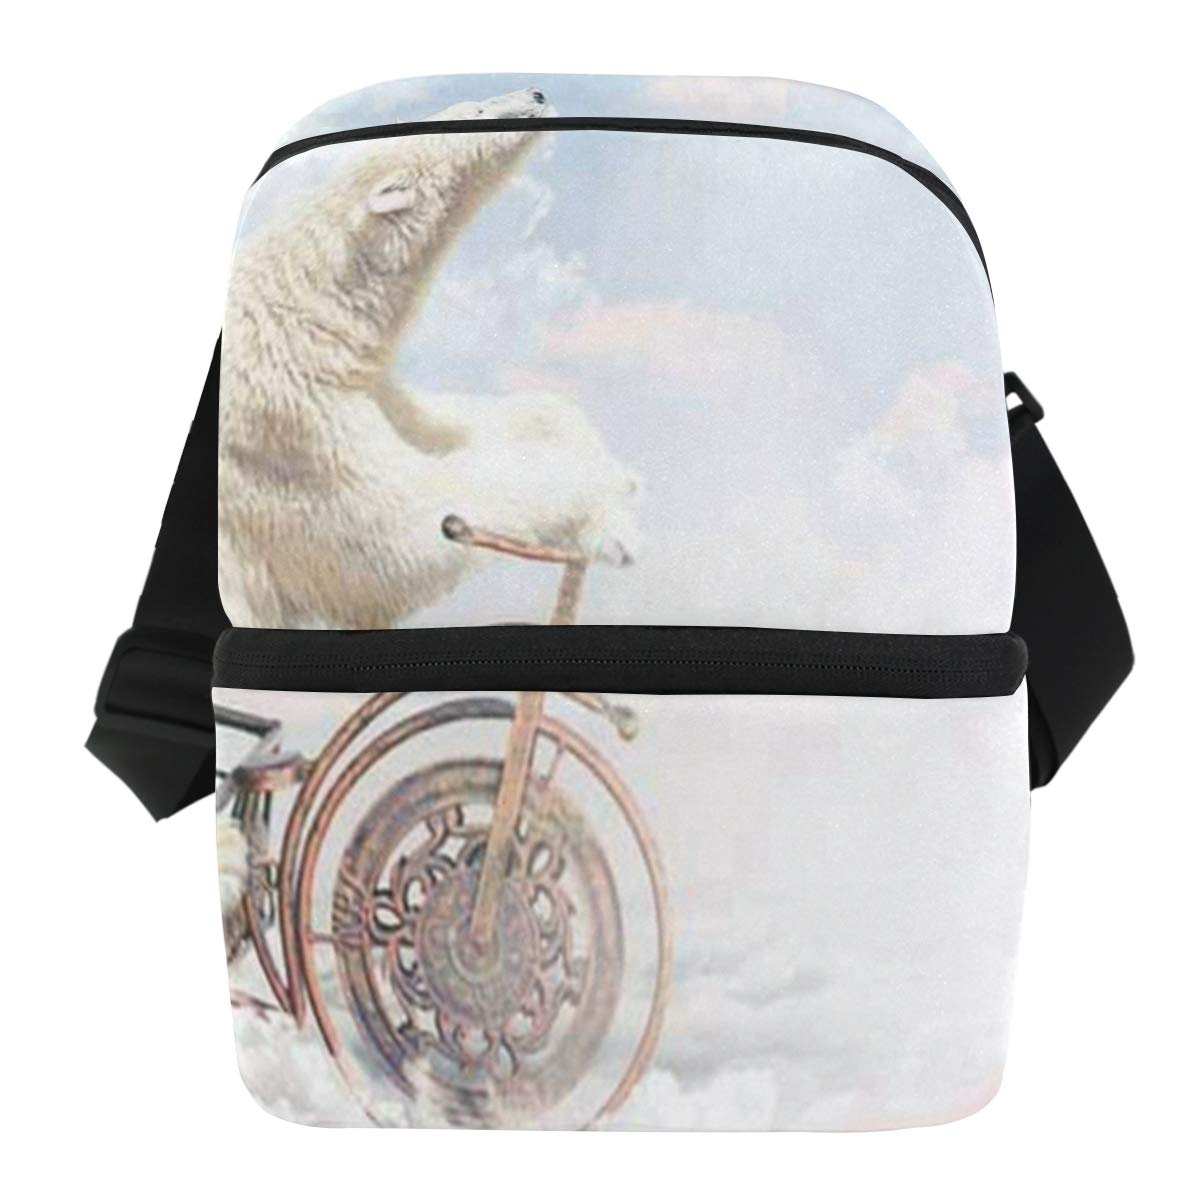 Lunch Bag Polar Bear Above The Clouds Portable Cooler Bag Adult Leakproof refrigerator Organizer Zipper Tote Bags for Picnic